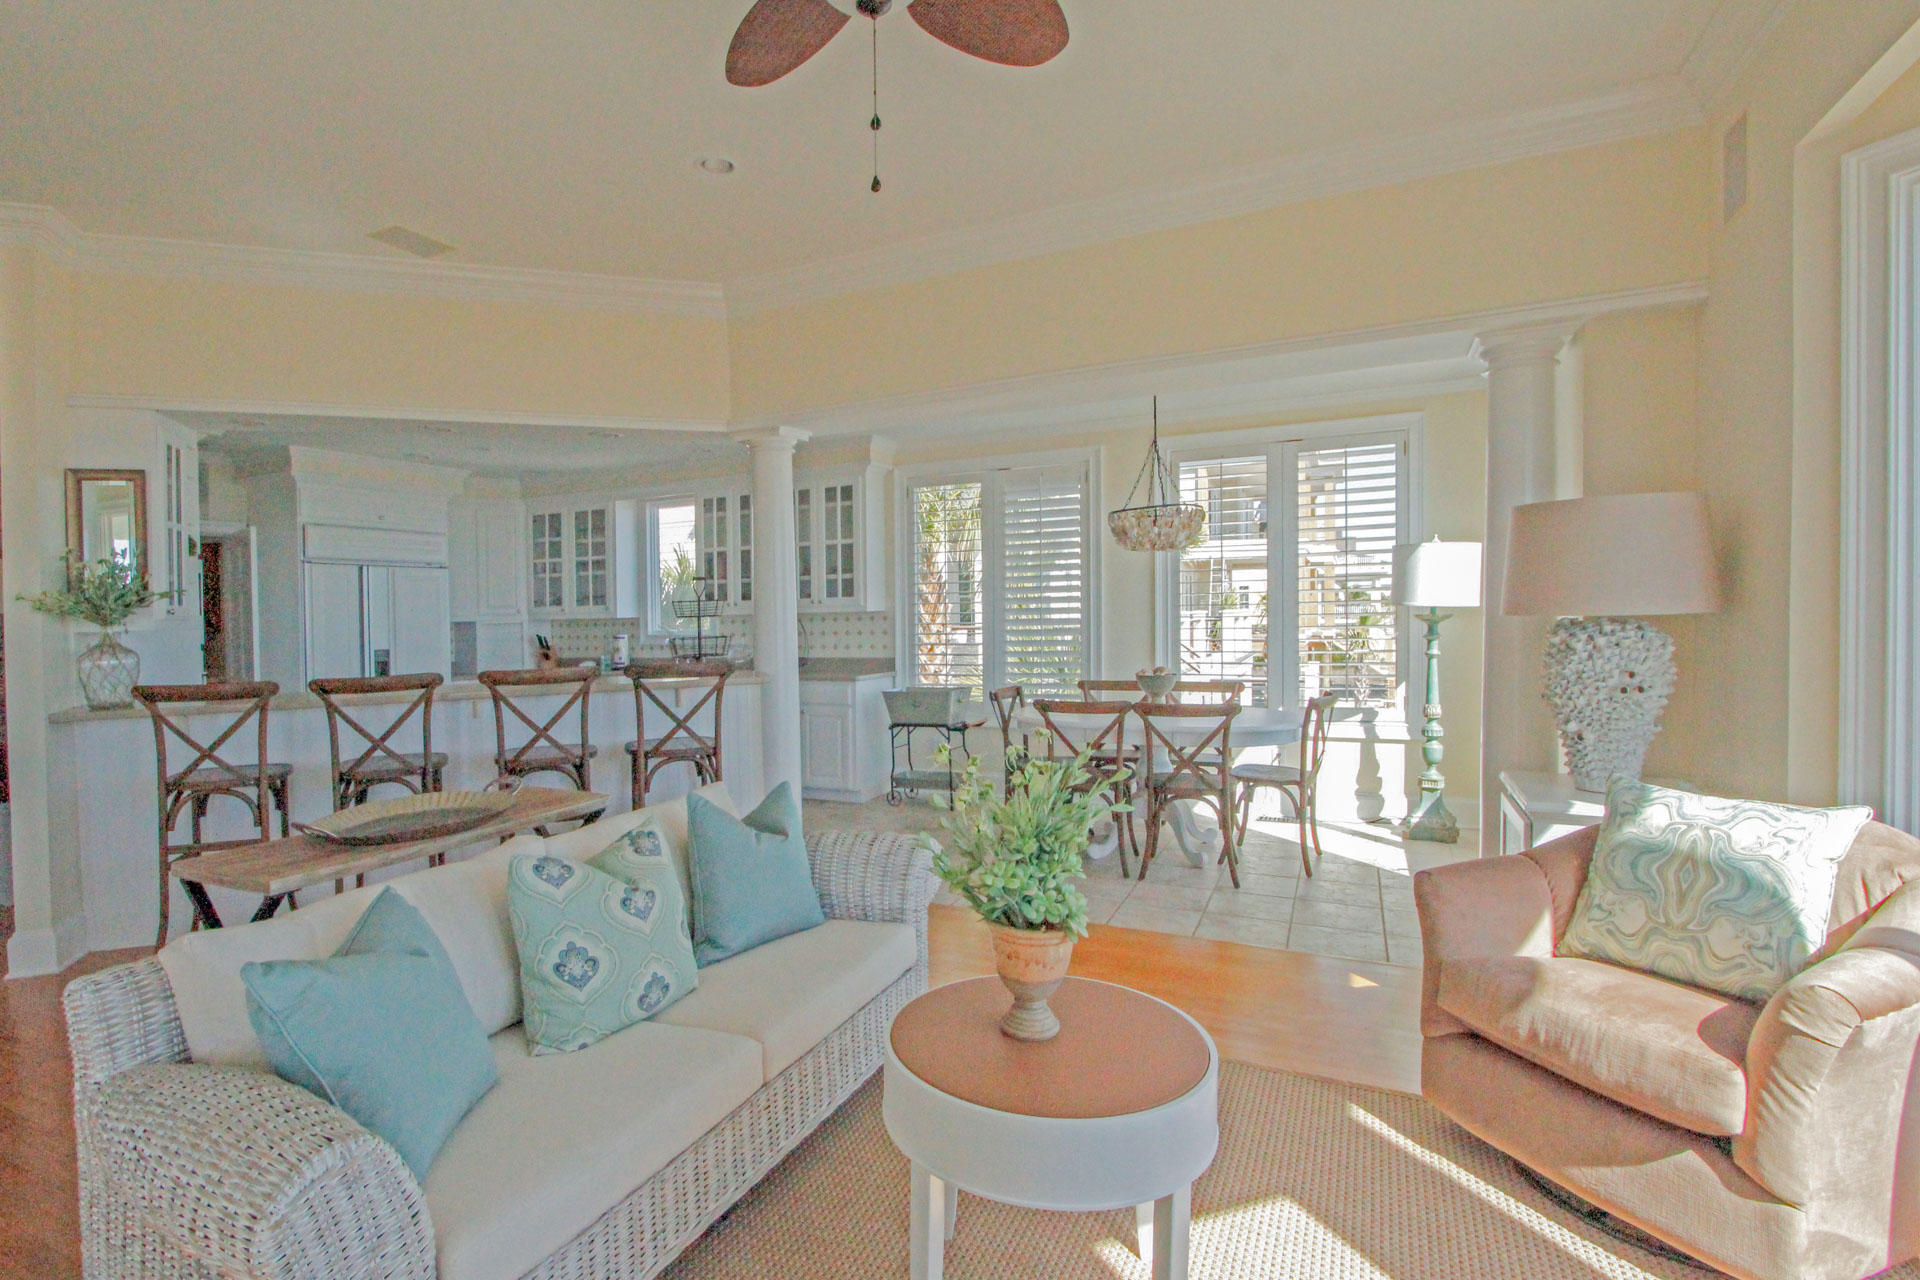 Isle of Palms Homes For Sale - 810 Ocean, Isle of Palms, SC - 17